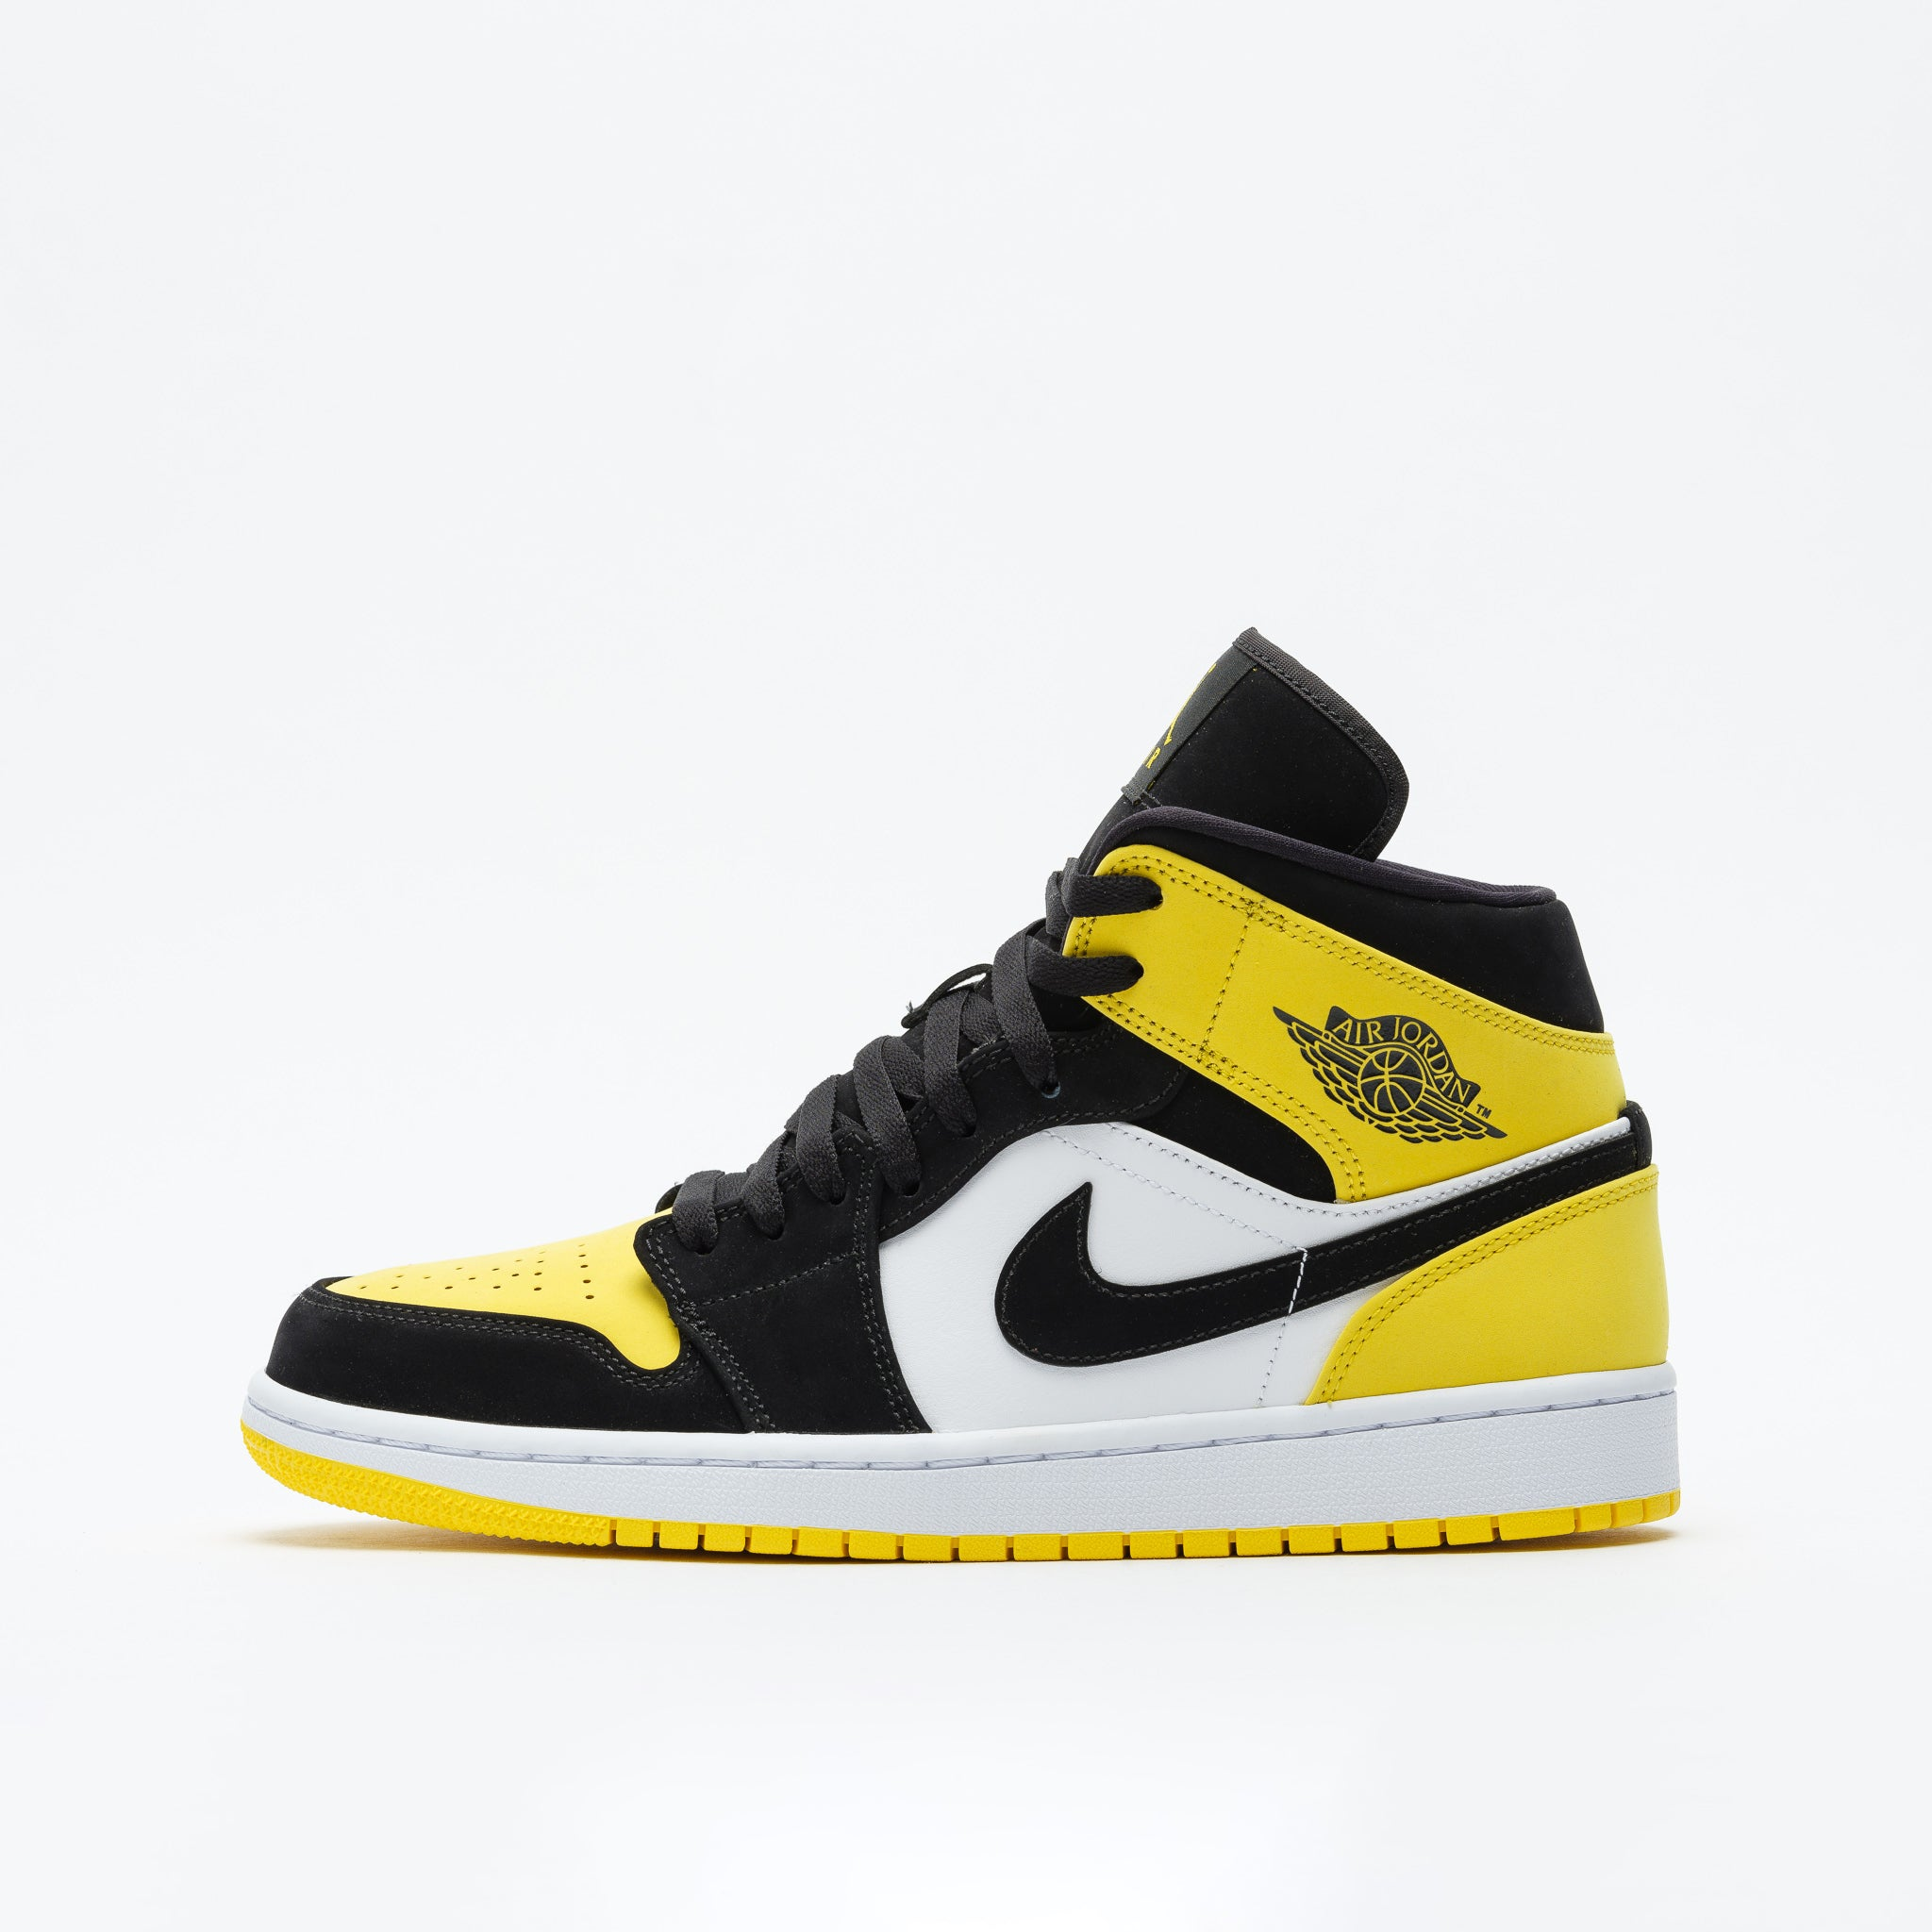 best service 065ed 26d59 Air Jordan 1 Mid SE in Tour Yellow Black